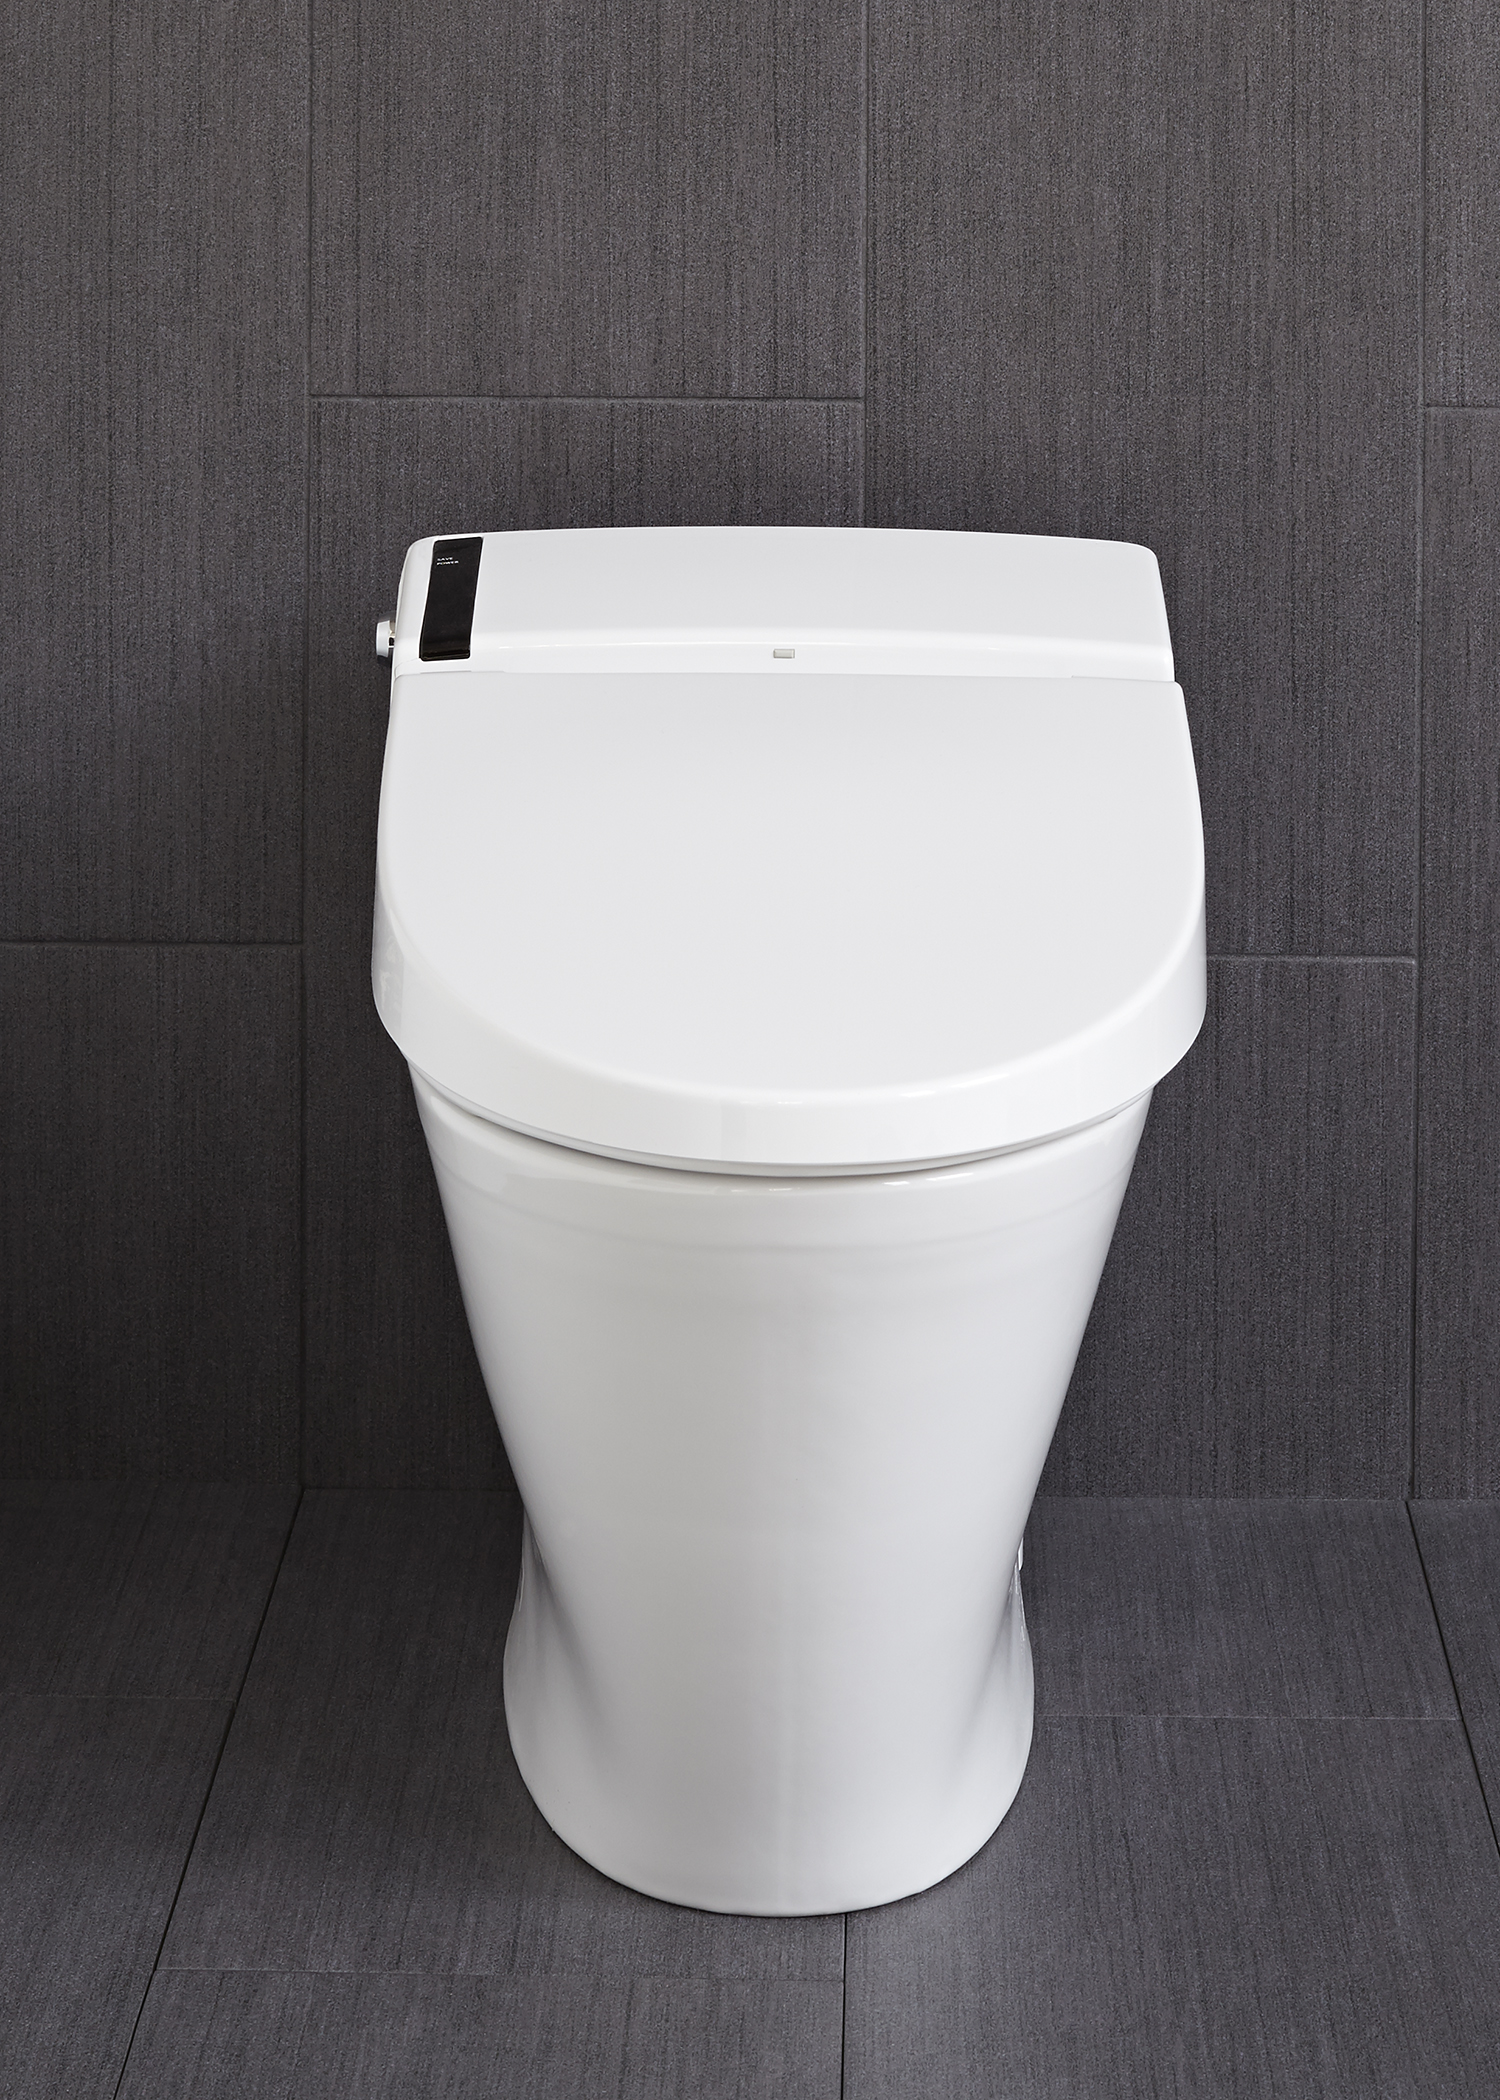 View Large Image Download High Resolution AT200 Smart Toilet